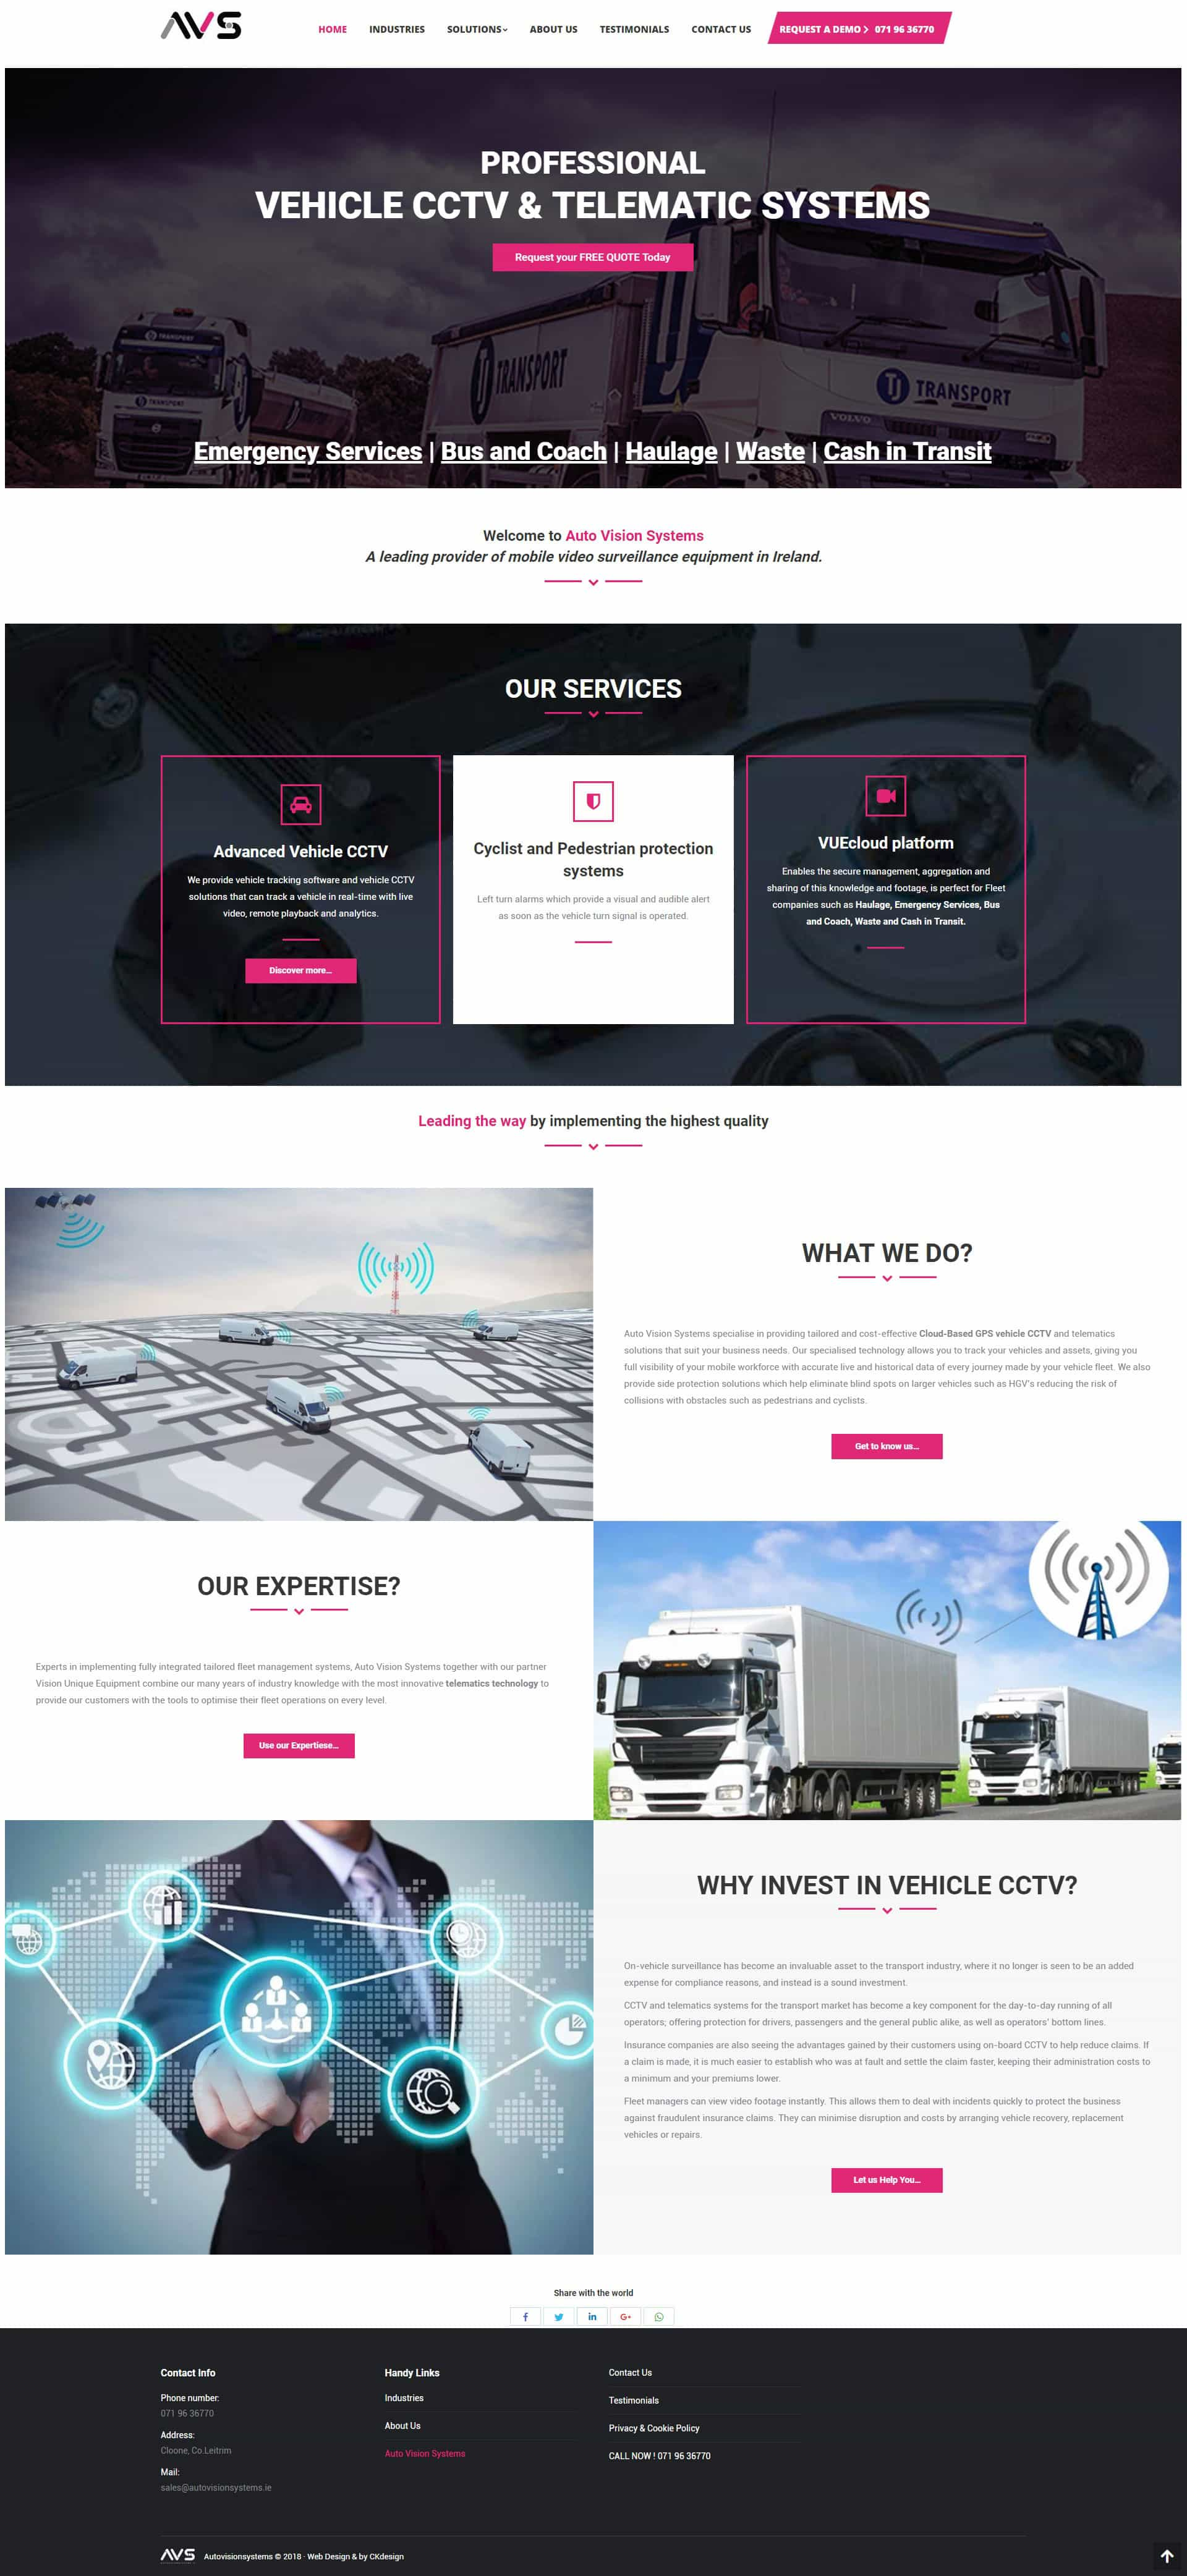 website design dublin projects of Auto Vision Systems Dublin